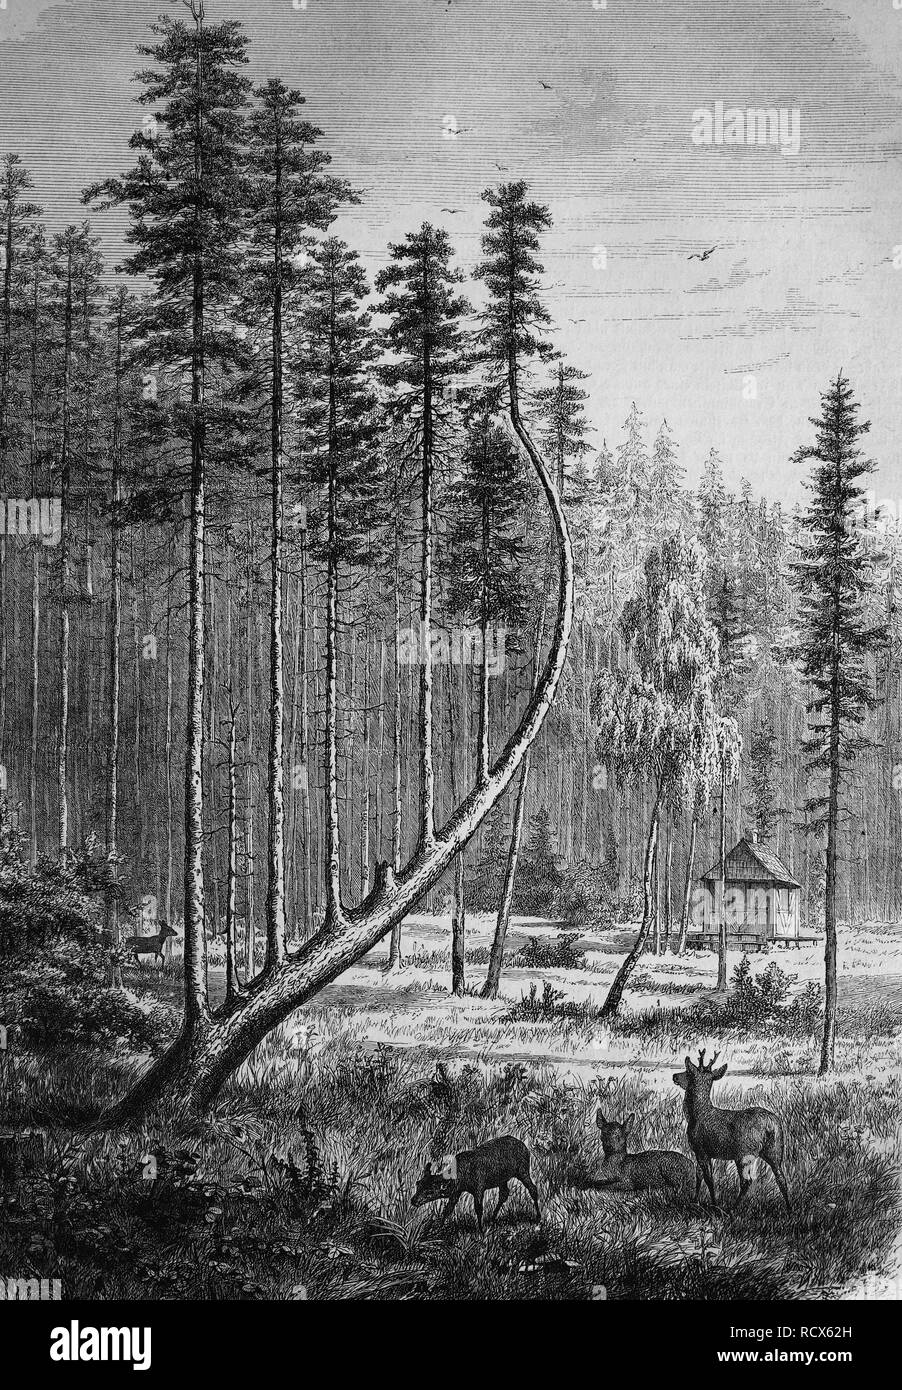 Sommerau Harp, spruce with a rare growth reminiscent of a harp, popular destination and object for artistic representations - Stock Image